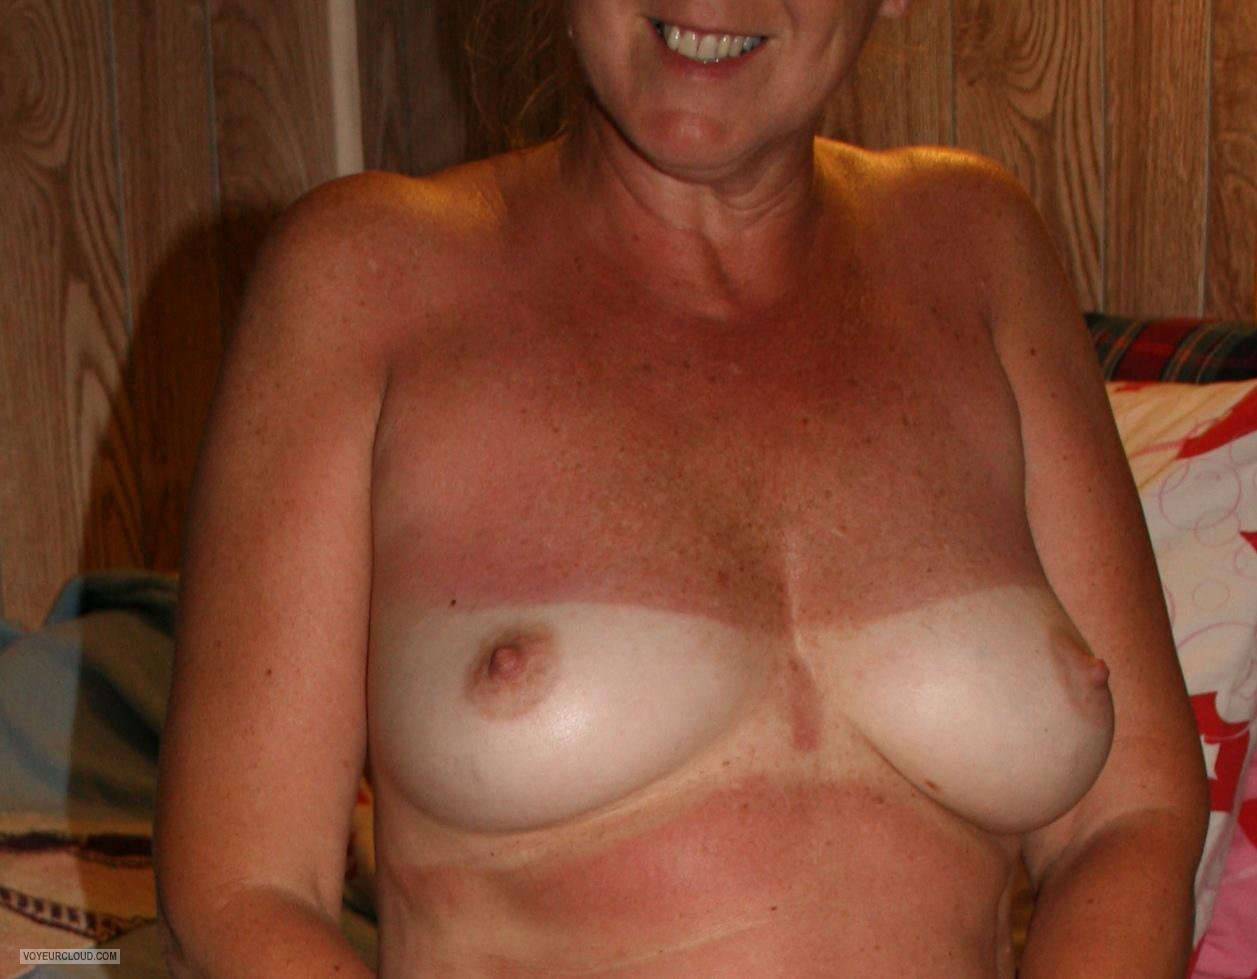 Tit Flash: Wife's Medium Tits With Very Strong Tanlines - Tracy Lynn from United States